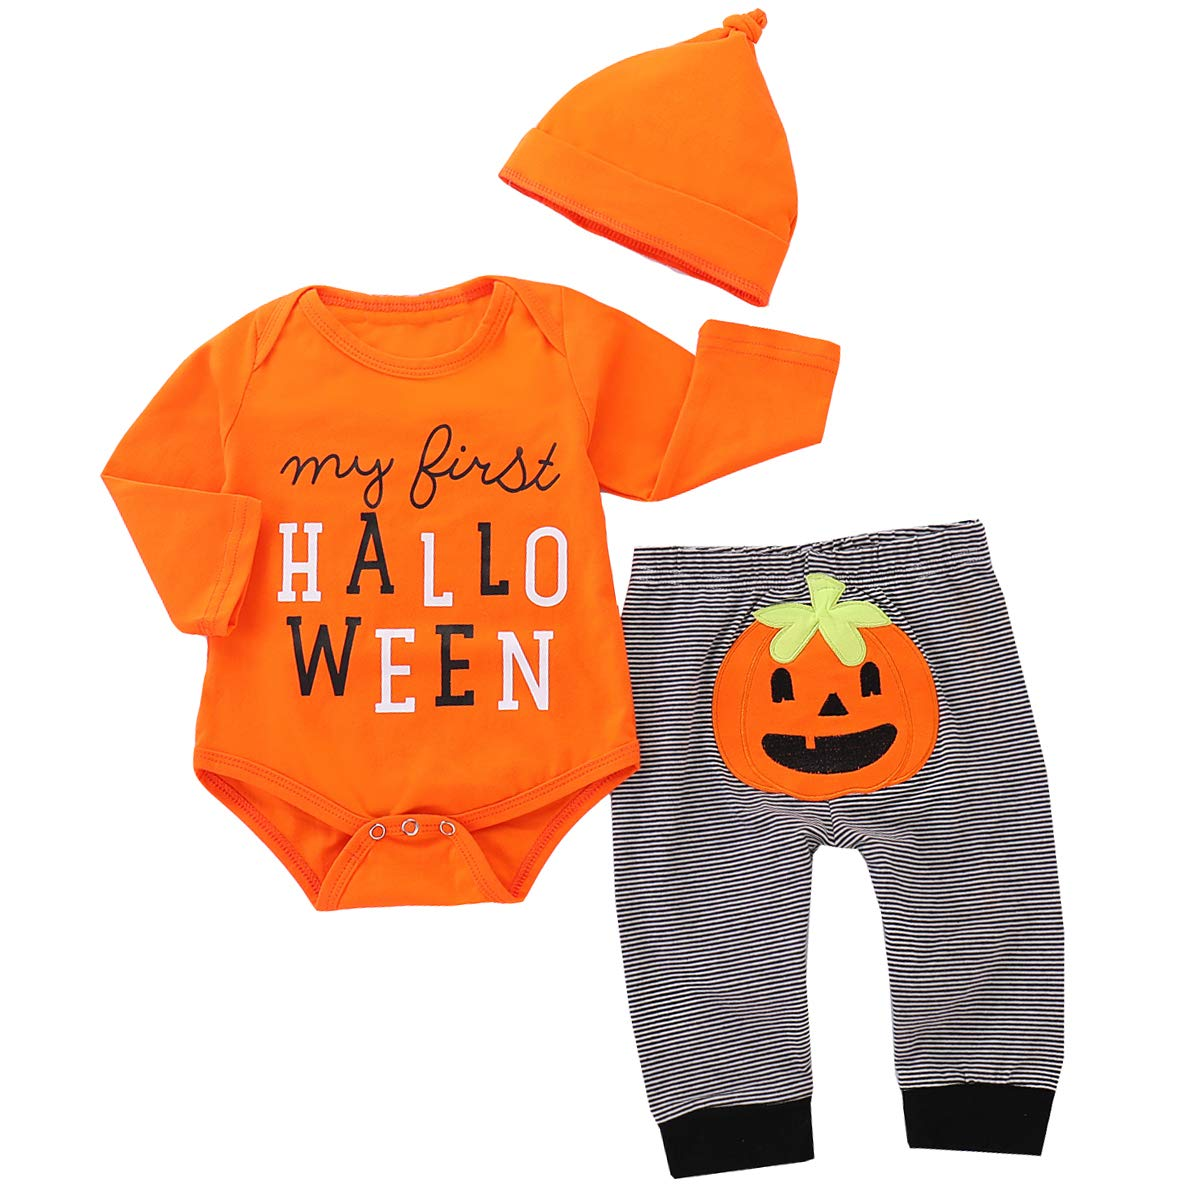 Baby Halloween Pumpkin.3pcs Set Baby Halloween Pumpkin Outfits My First Halloween Romper Trousers Cap Fashion Baby Clothes For 0 18 Months Buy Online In India At Desertcart In Productid 156124801